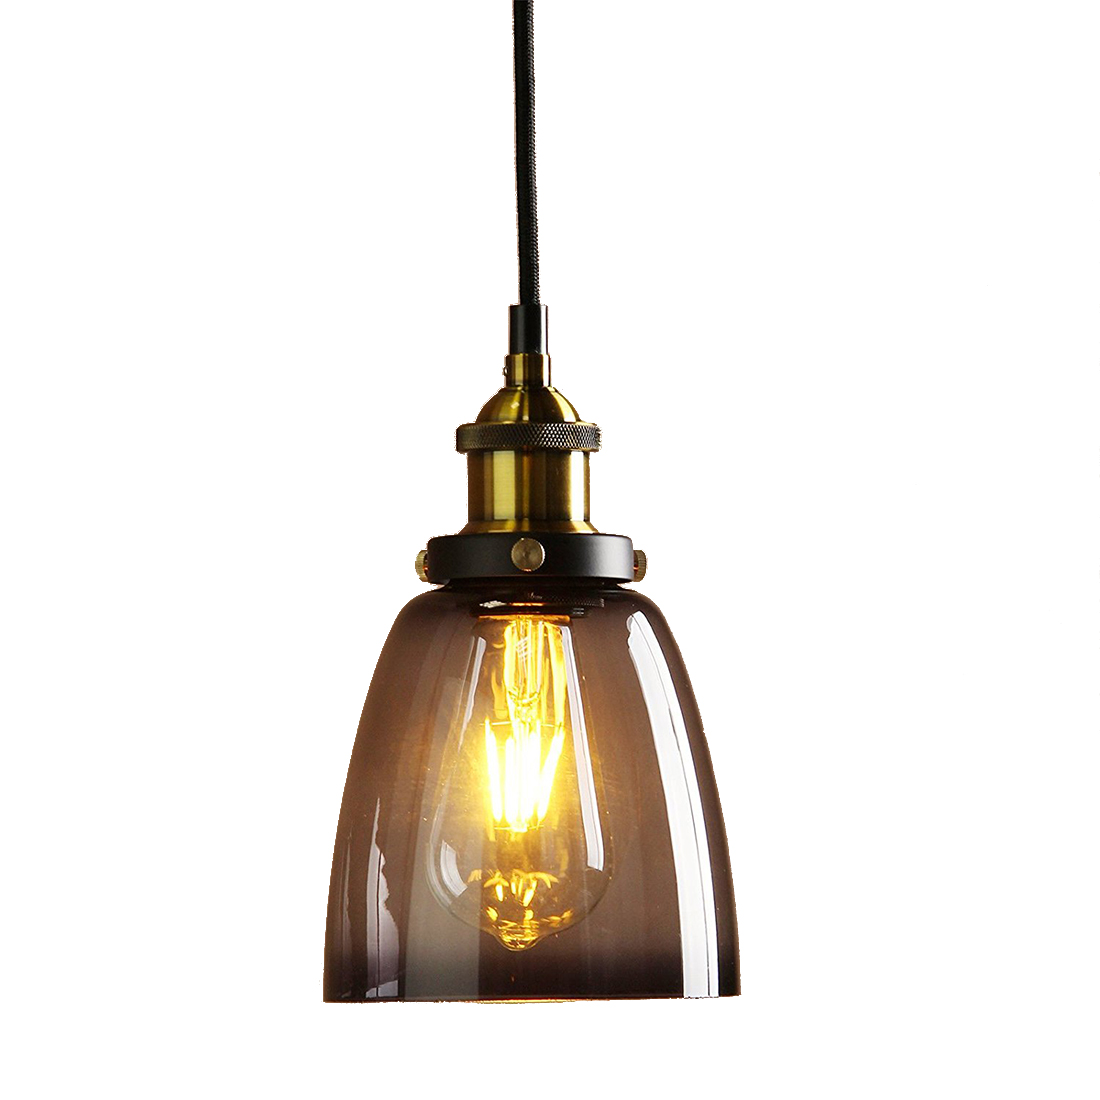 Vintage Industrial Metal Finish Black Gray Glass Shade Retro Ceiling Light Vintage Hanging Light fitting (diameter 14cm glass shVintage Industrial Metal Finish Black Gray Glass Shade Retro Ceiling Light Vintage Hanging Light fitting (diameter 14cm glass sh